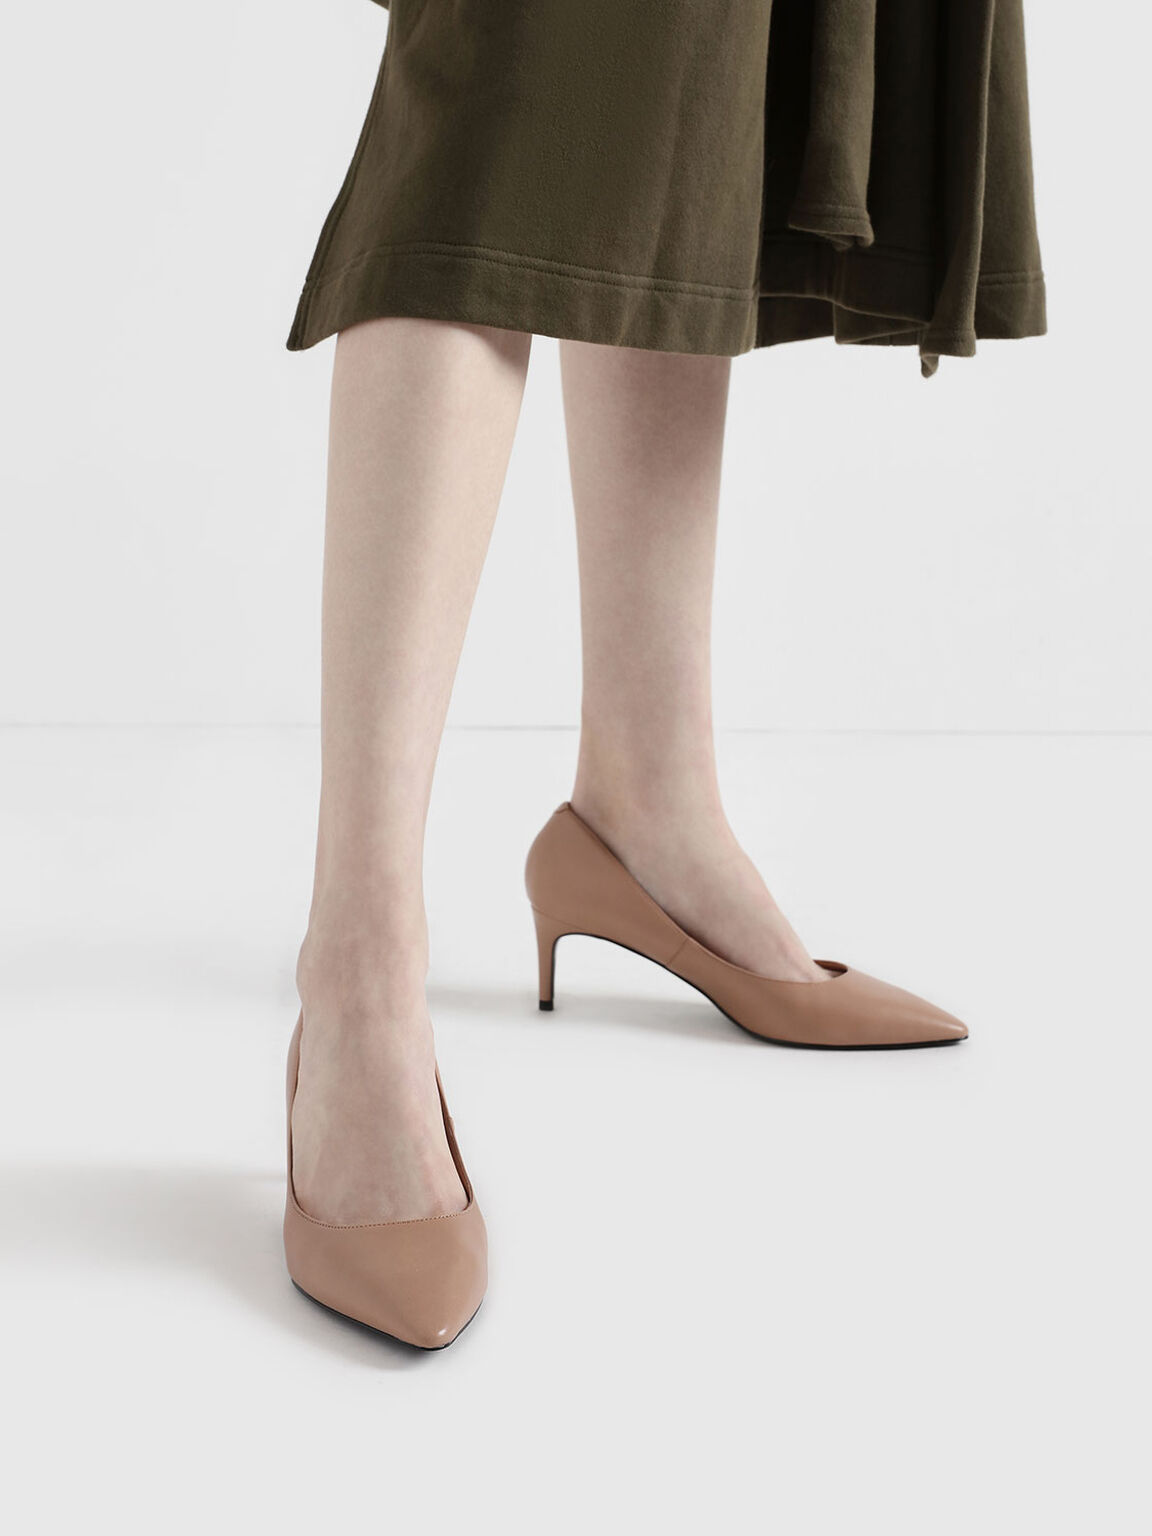 Classic Pointed Toe Pumps, Nude, hi-res